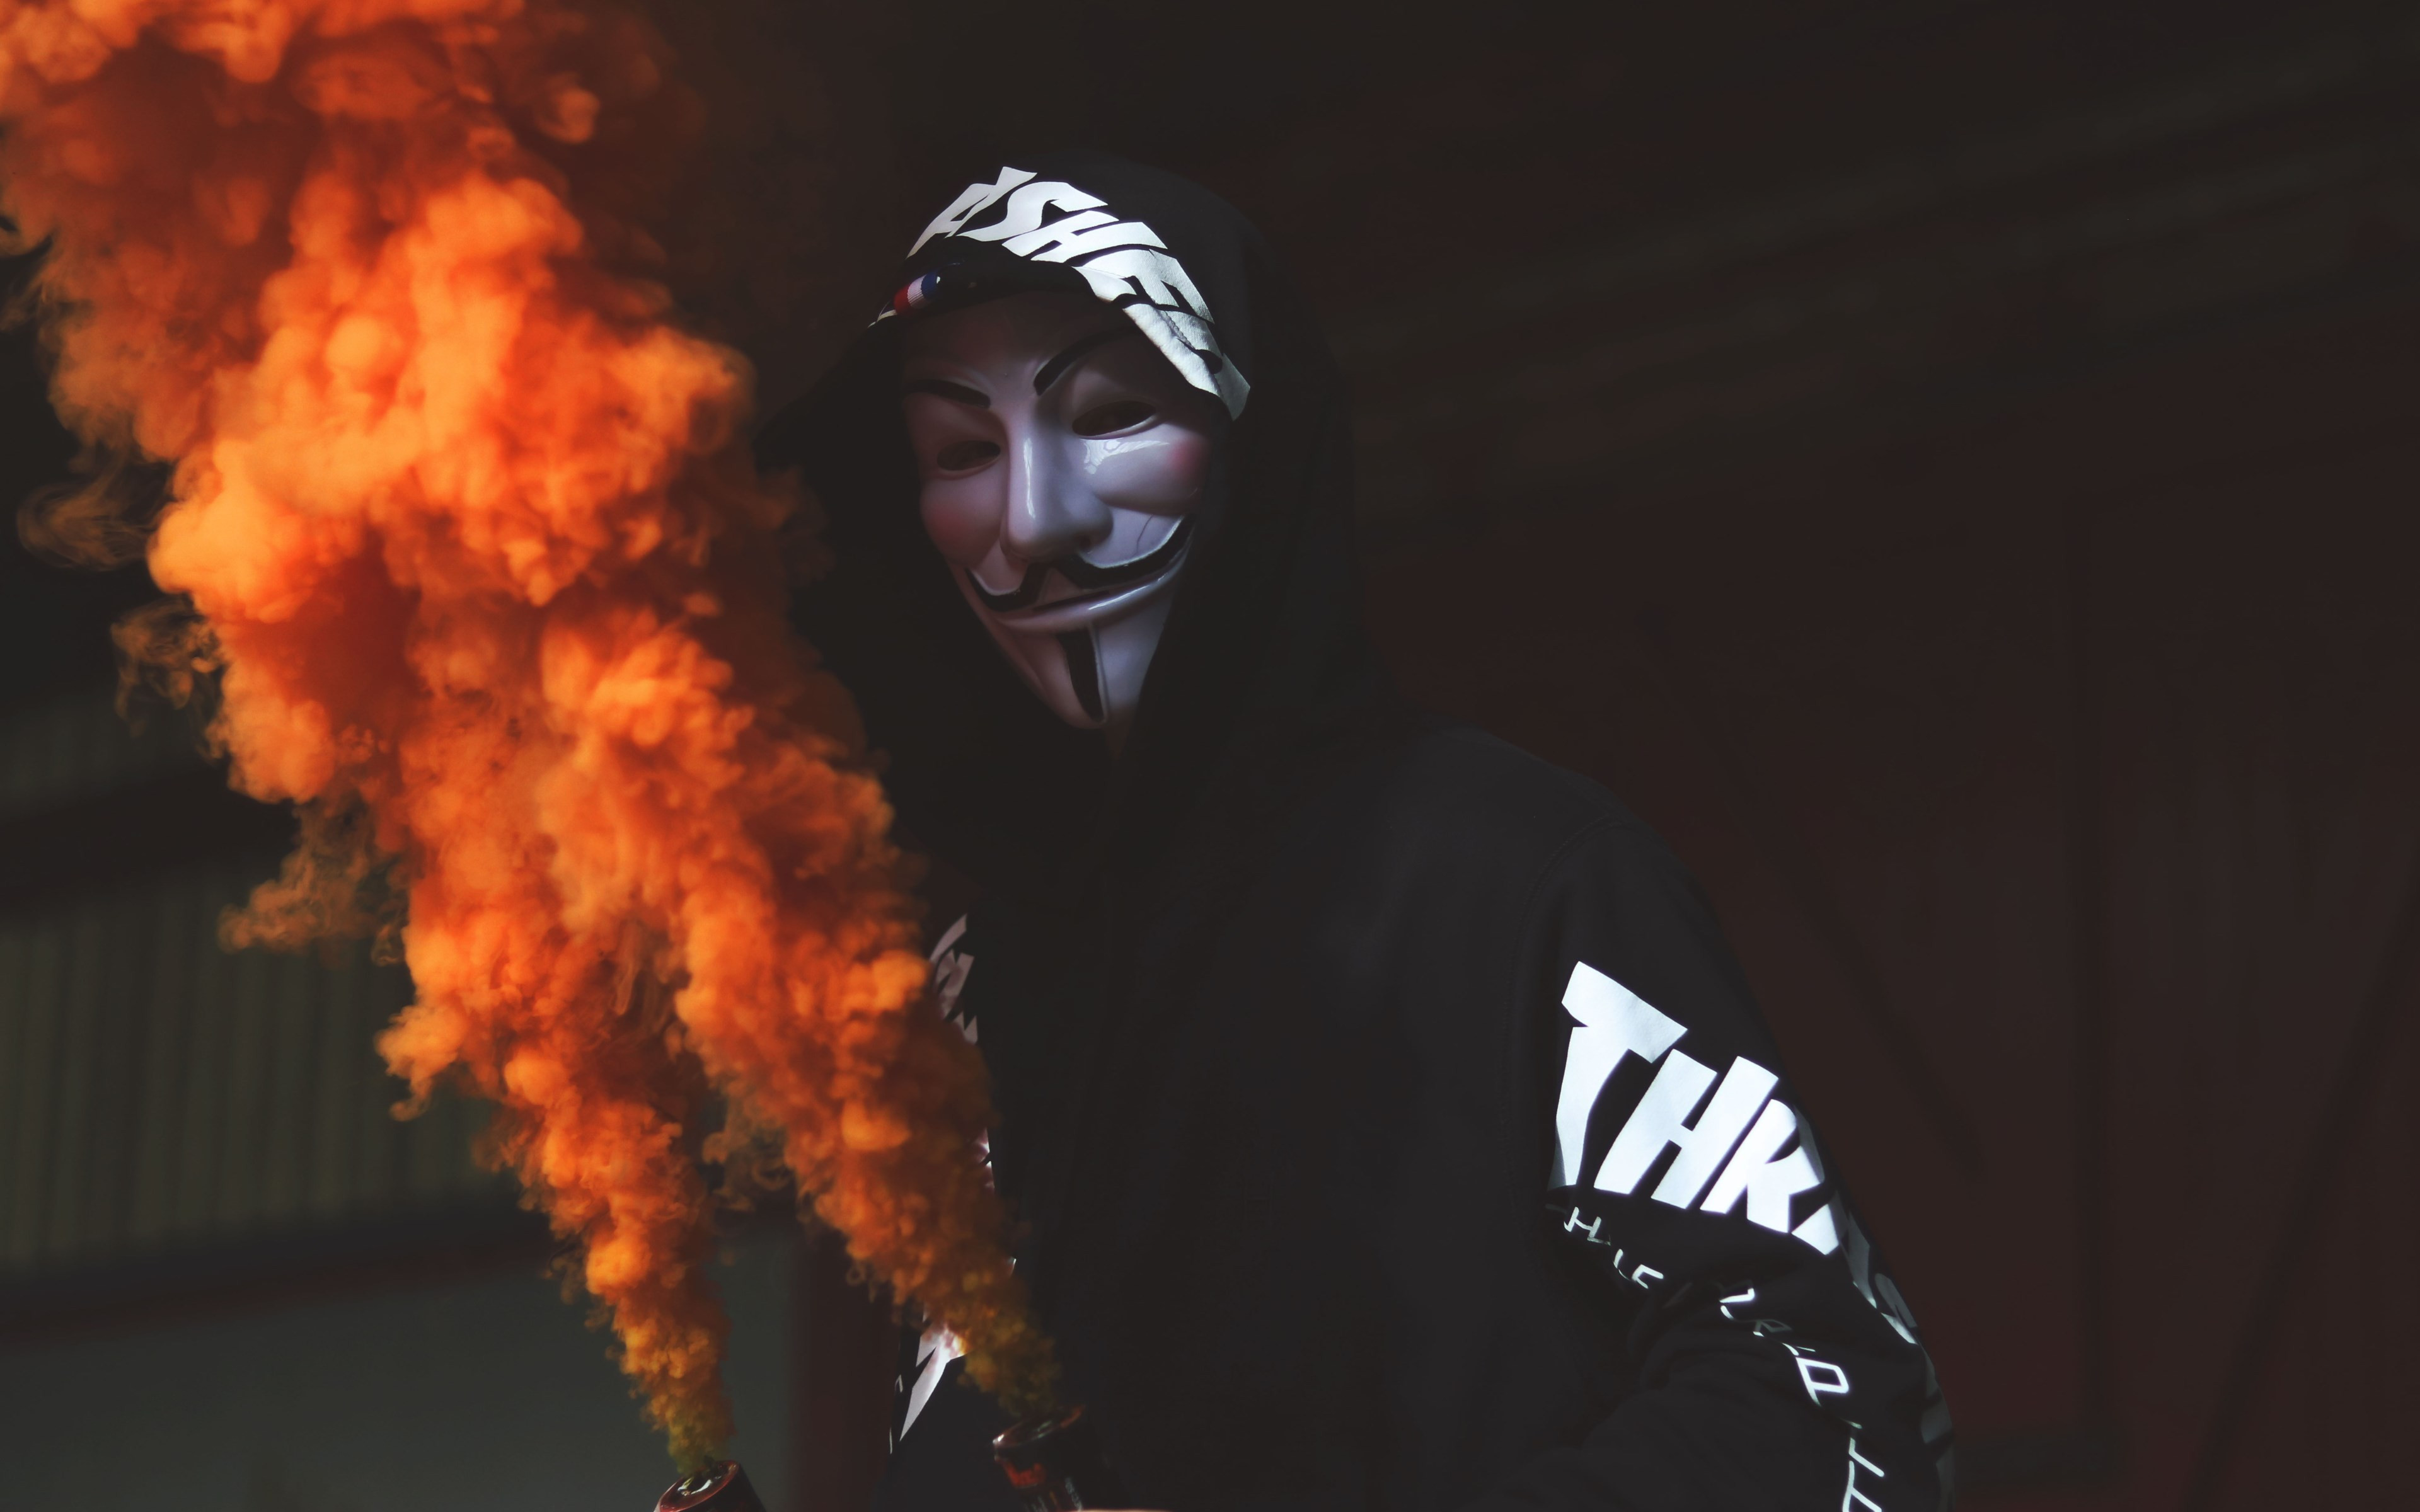 Anonymous mask and orange smoke | 3840x2400 wallpaper